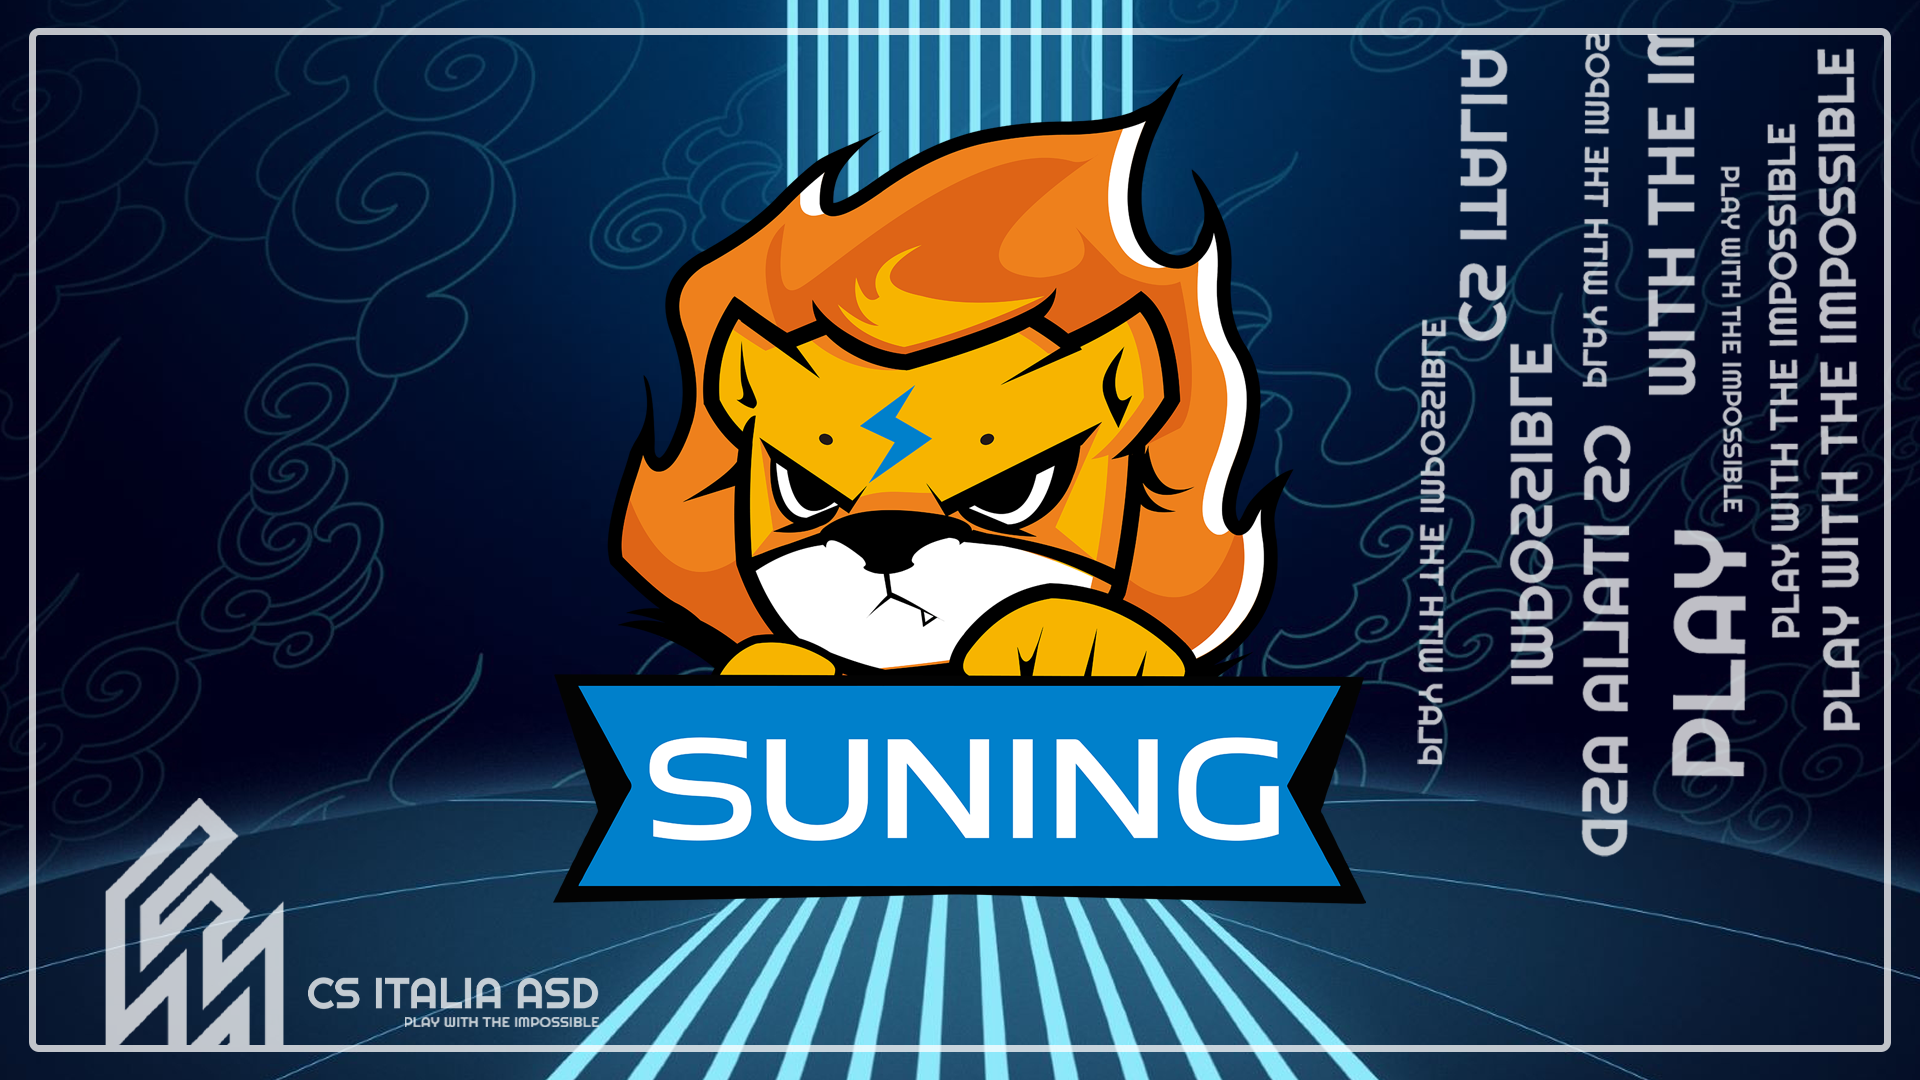 Worlds 2020: I Suning trionfano nel Girone A!